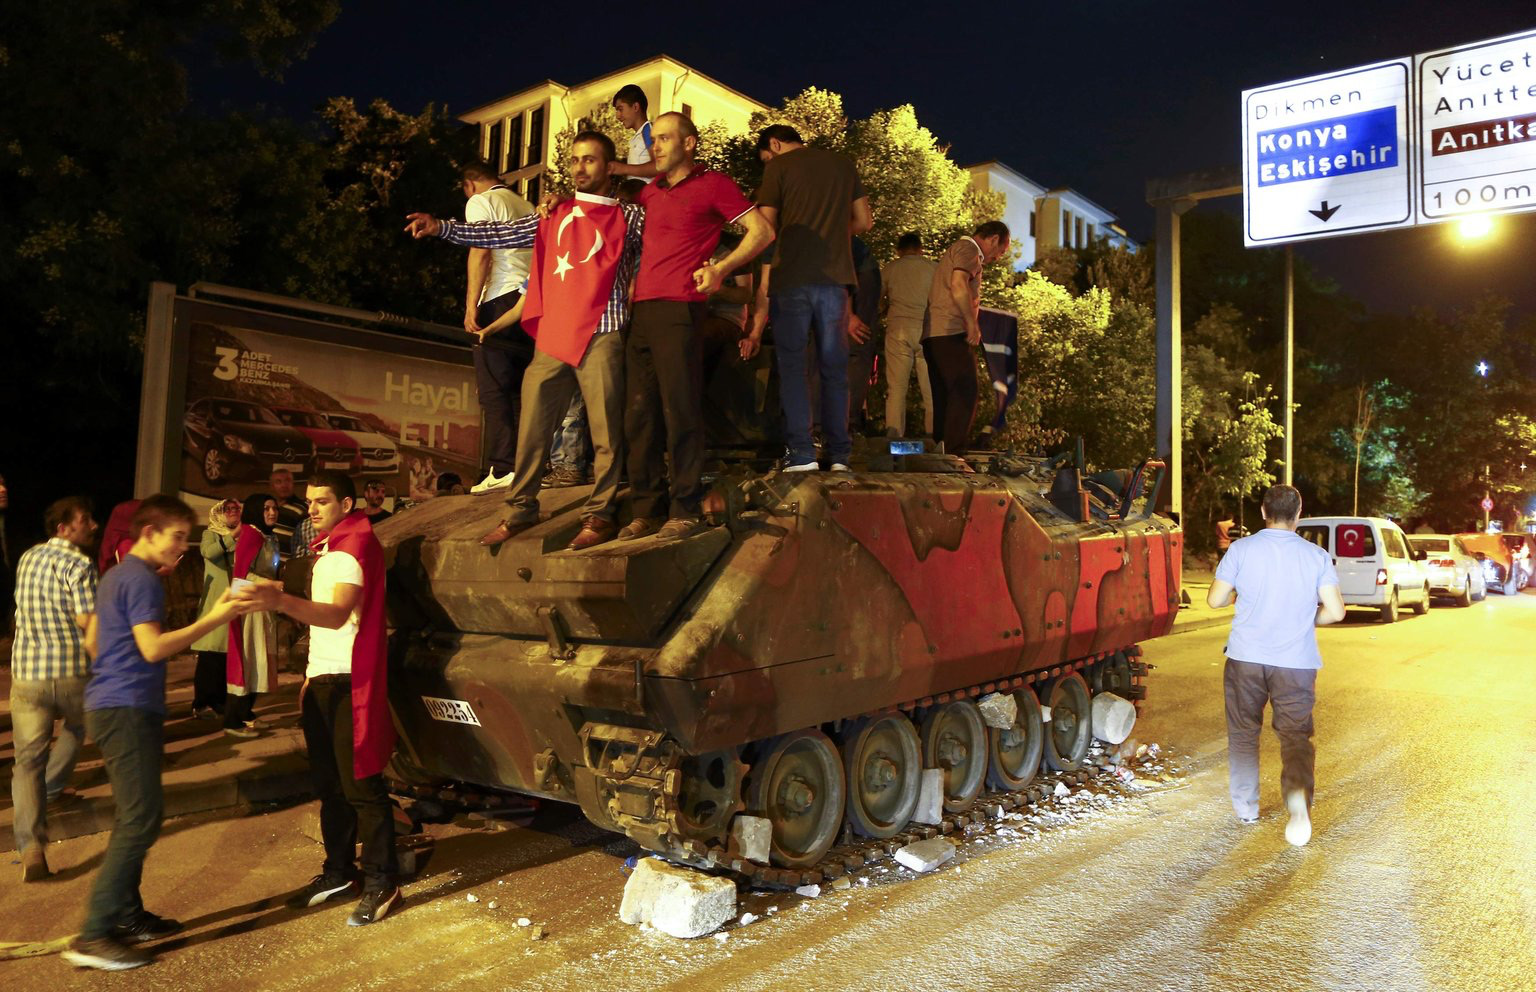 Supporters of Turkish President Tayyip Erdoğan stand on an abandoned tank during a demonstration outside parliament building in Ankara, Turkey, 16 July 2016.